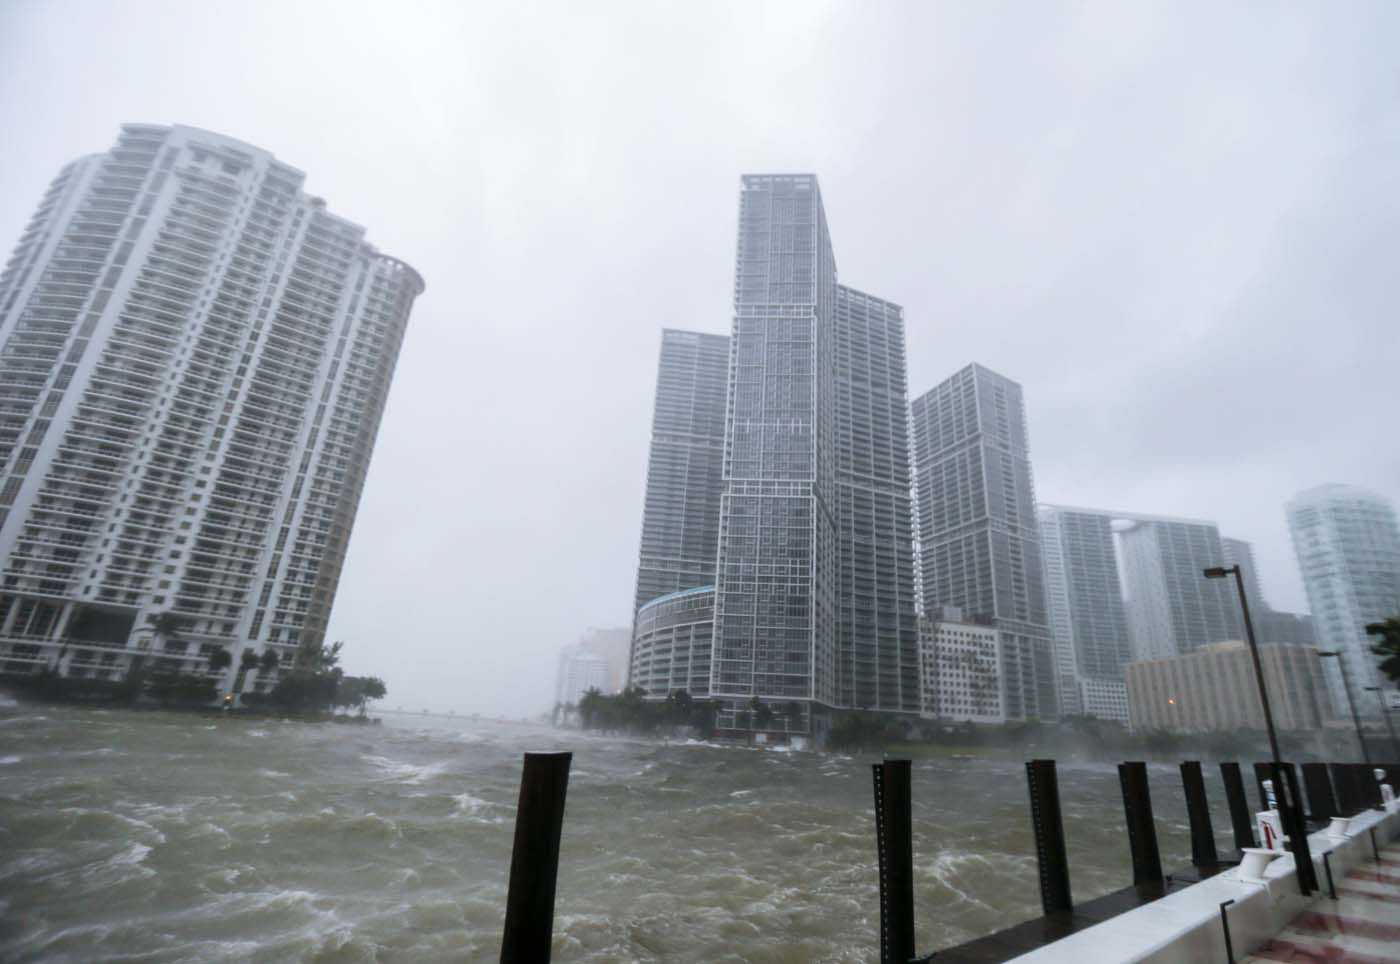 ELX01. Miami (United States), 10/09/2017.- The rough waters where the Miami River meets Biscayne Bay shows the full effects of Hurricane Irma strike in Miami, Florida, USA, 10 September 2017. Many areas are under mandatory evacuation orders as Irma approaches Florida. The National Hurricane Center has rated Irma as a Category 4 storm as the eye crosses the lower Florida Keys. (Estados Unidos) EFE/EPA/ERIK S. LESSER